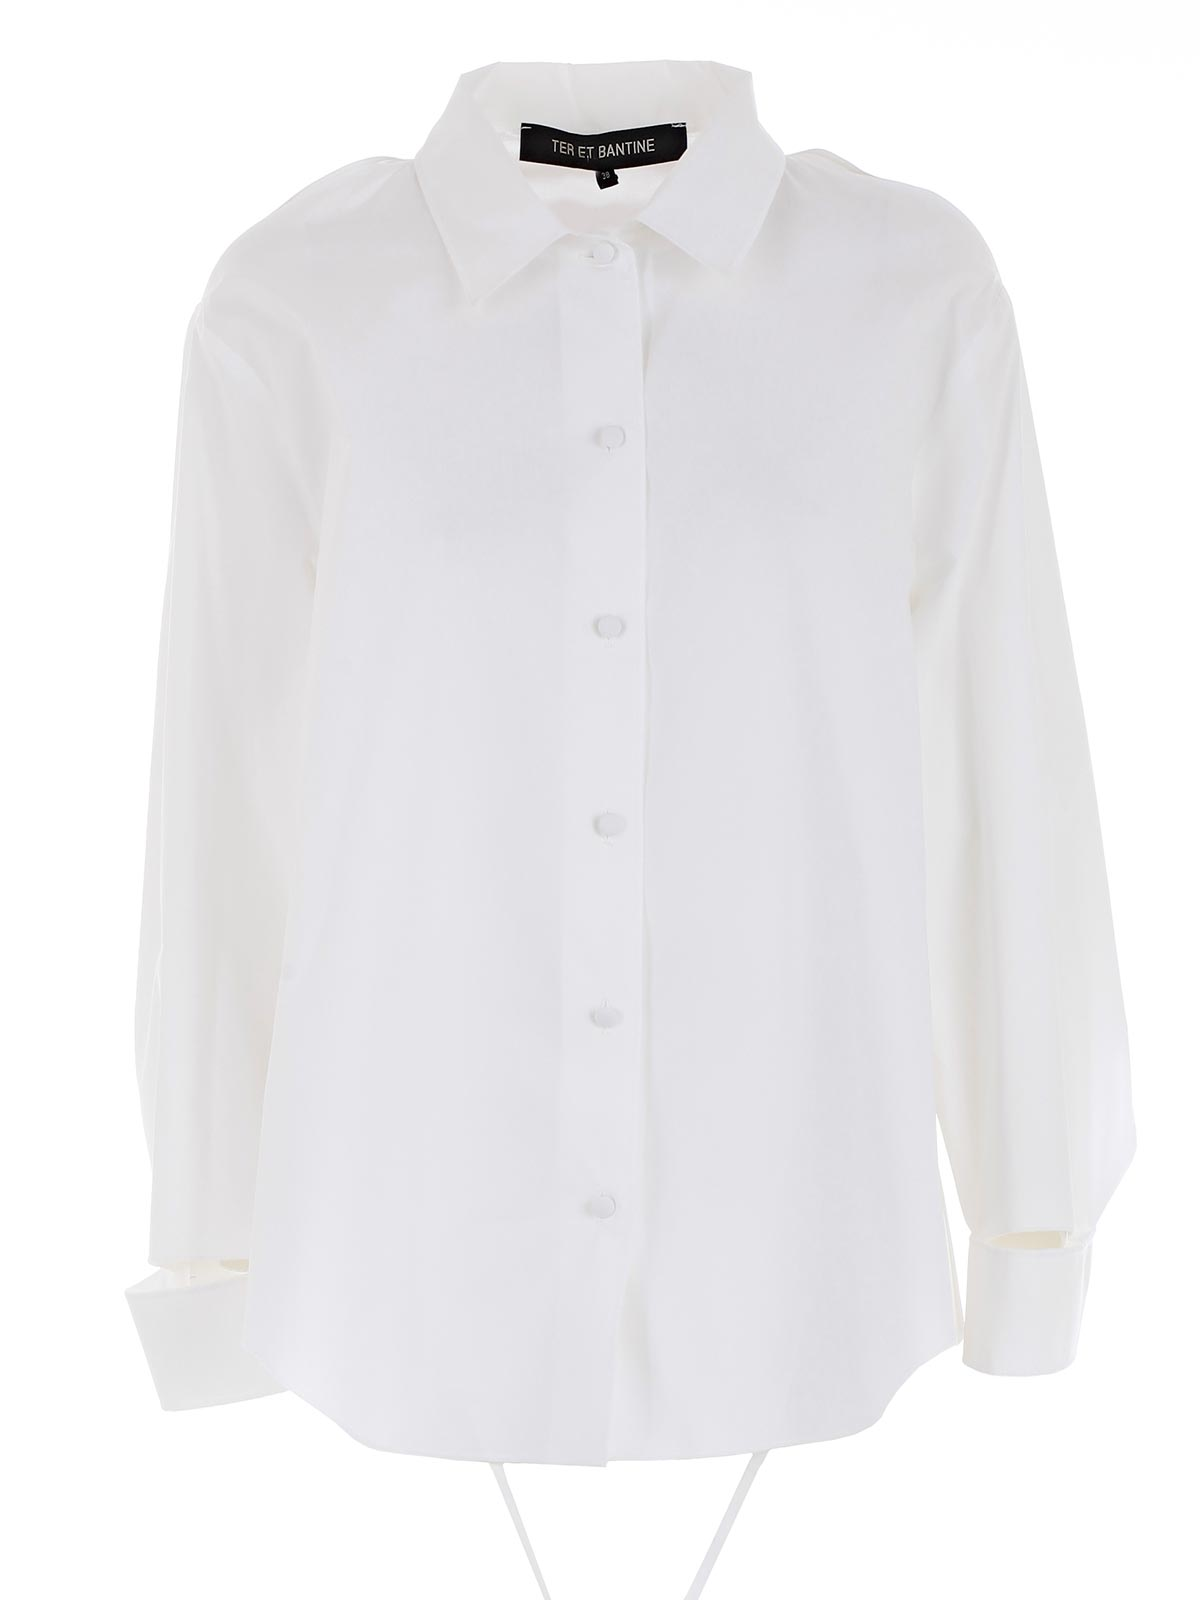 Picture of Ter Et Bantine Shirts